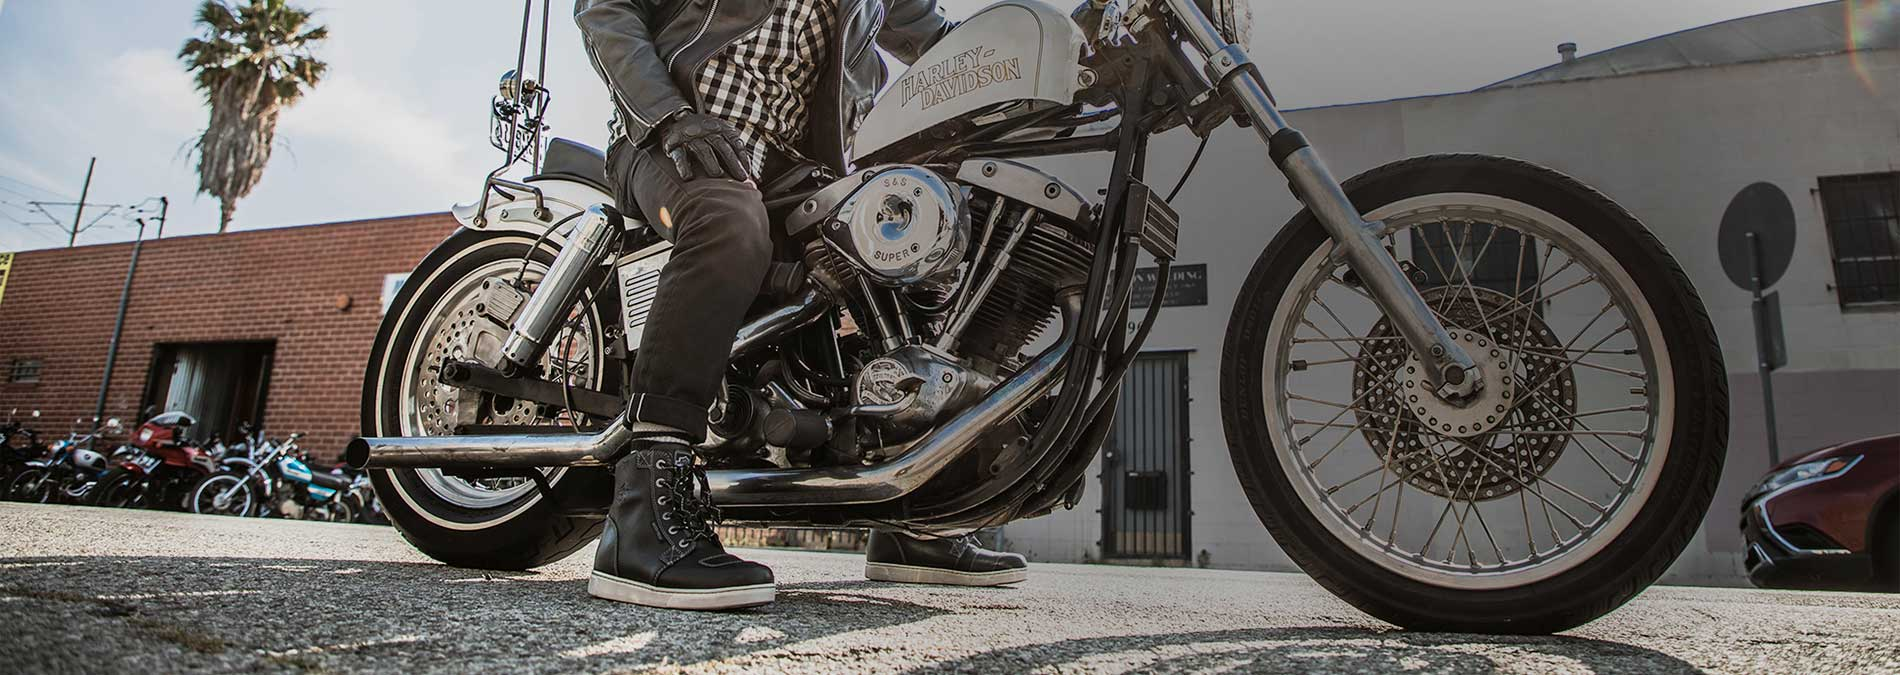 520cb8632f8 Casual & Motorcycle Boots & Shoes | Harley-Davidson Footwear